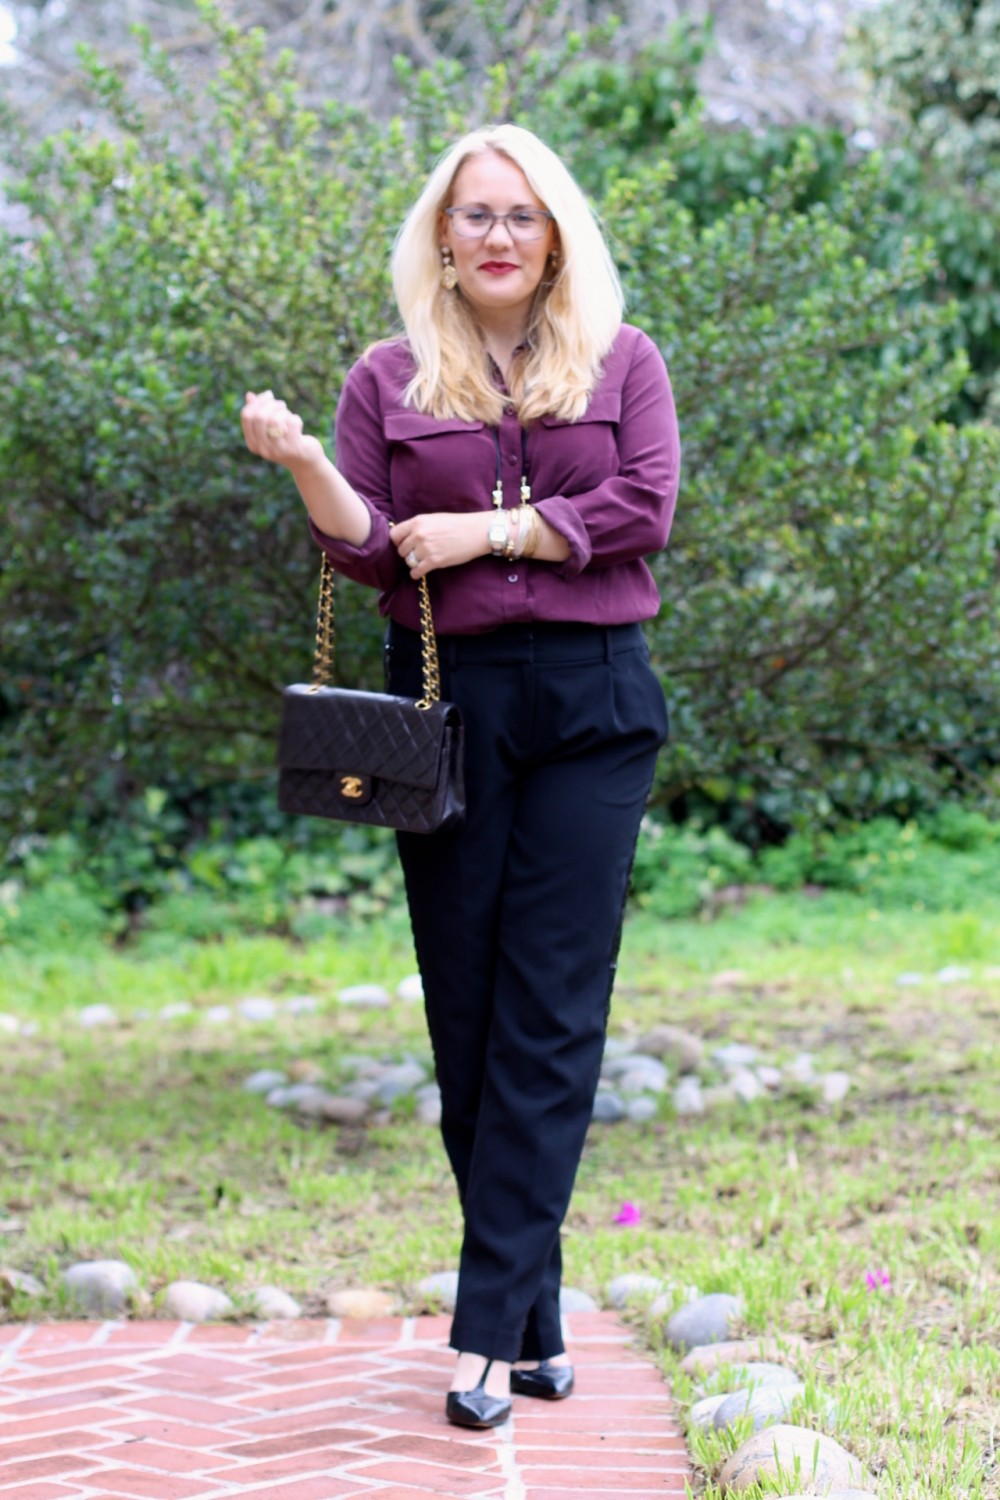 Sequin Tuxedo Trousers-Work Wear-Outfit Inspiration-Chanel Classic Flap Bag-Equipment Blouse-Nine West T-Strap Heels-Have Need Want 2